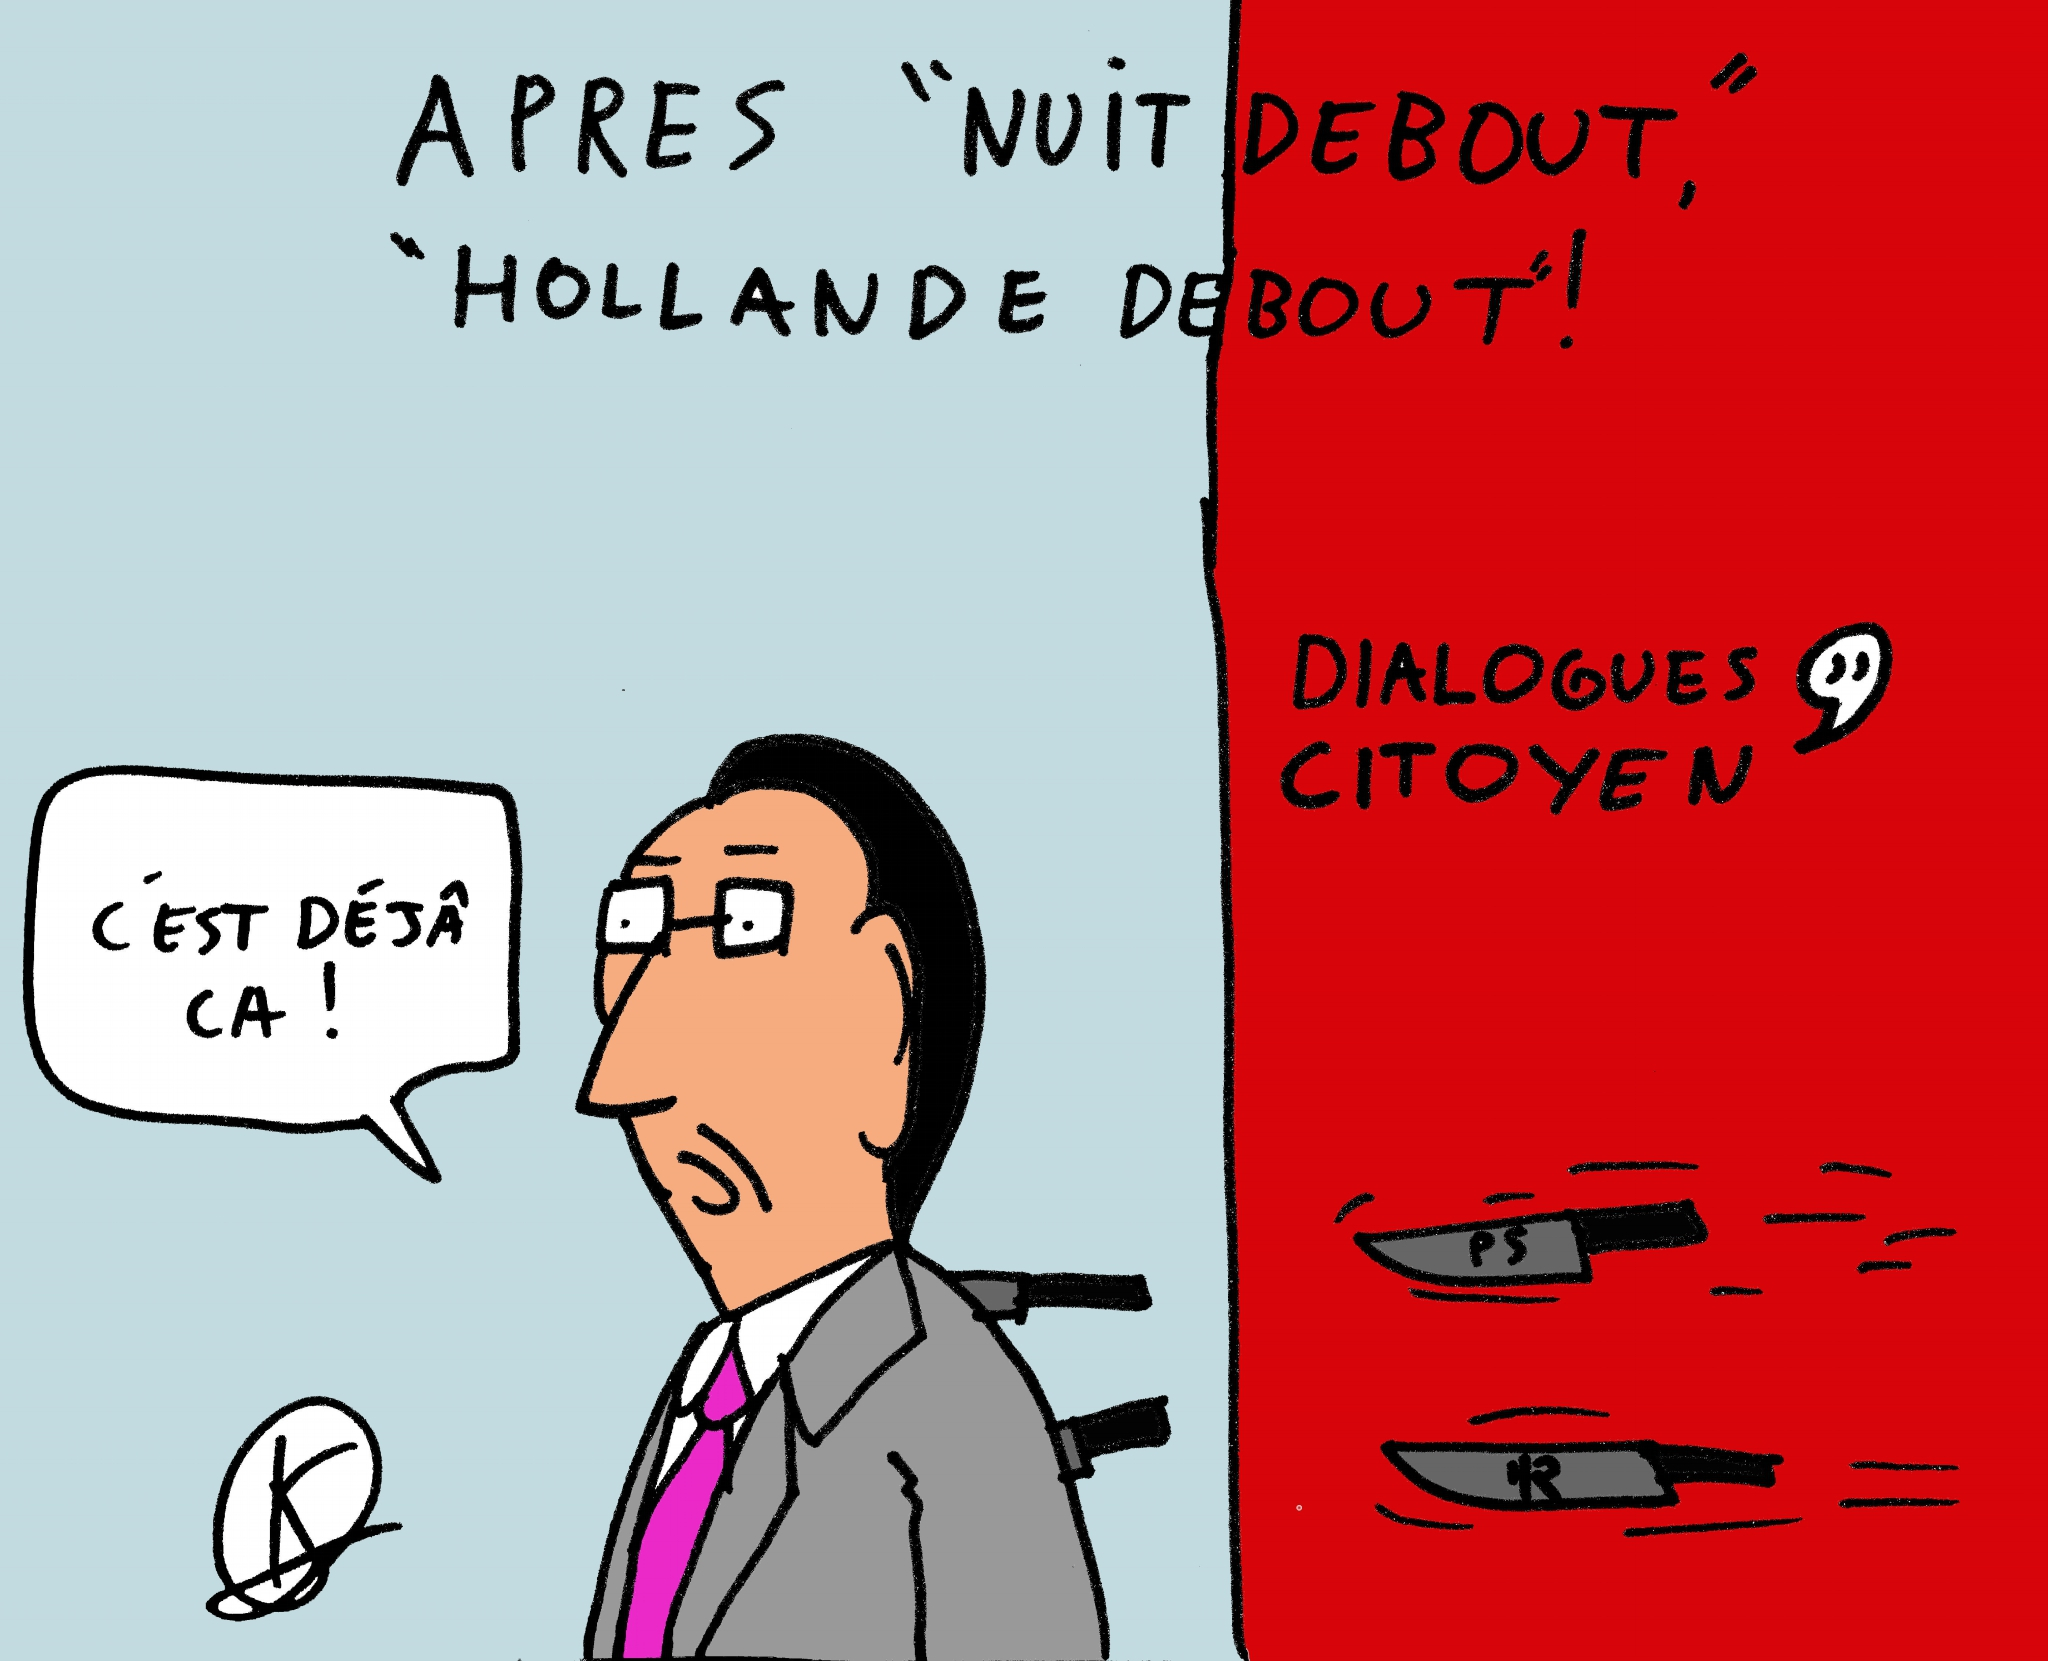 dialogue-hollande